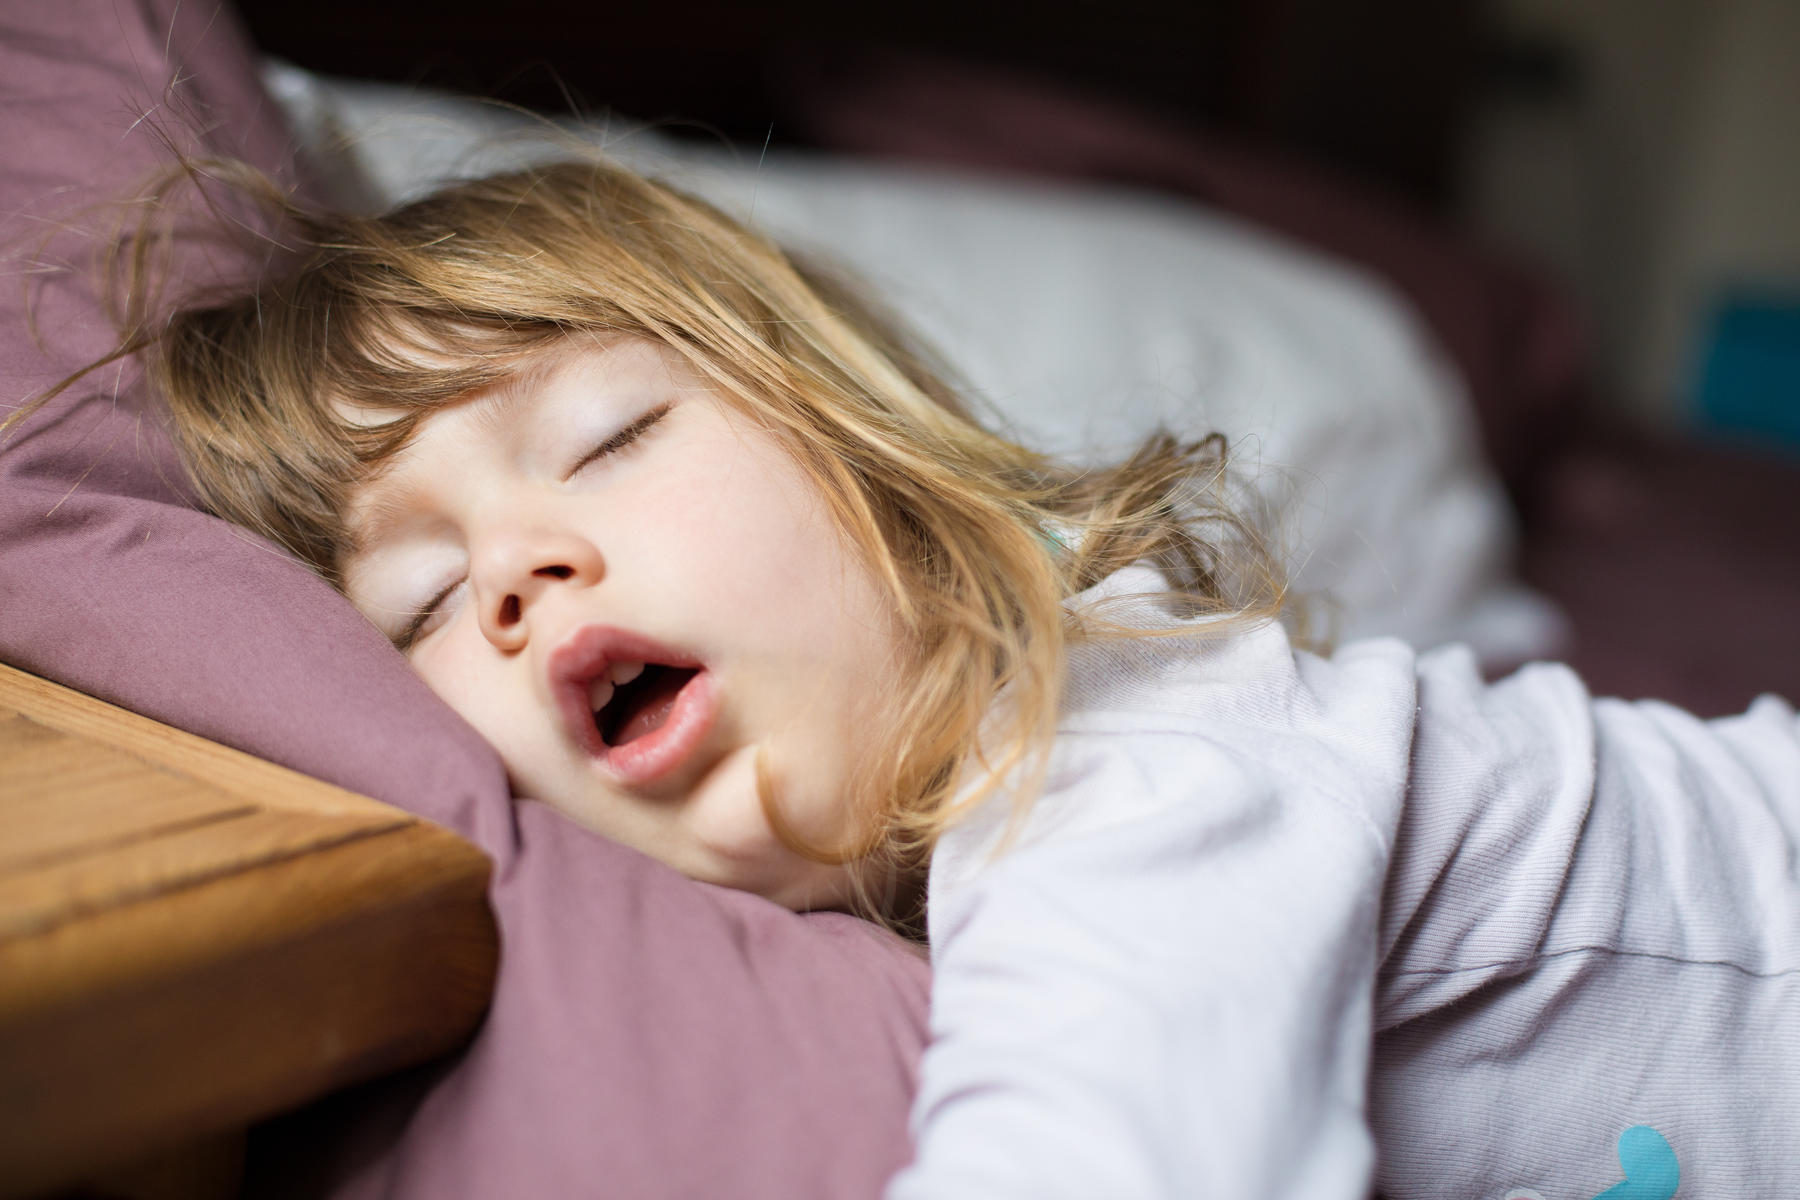 Signs of Sleep Apnea in Children and How to Help